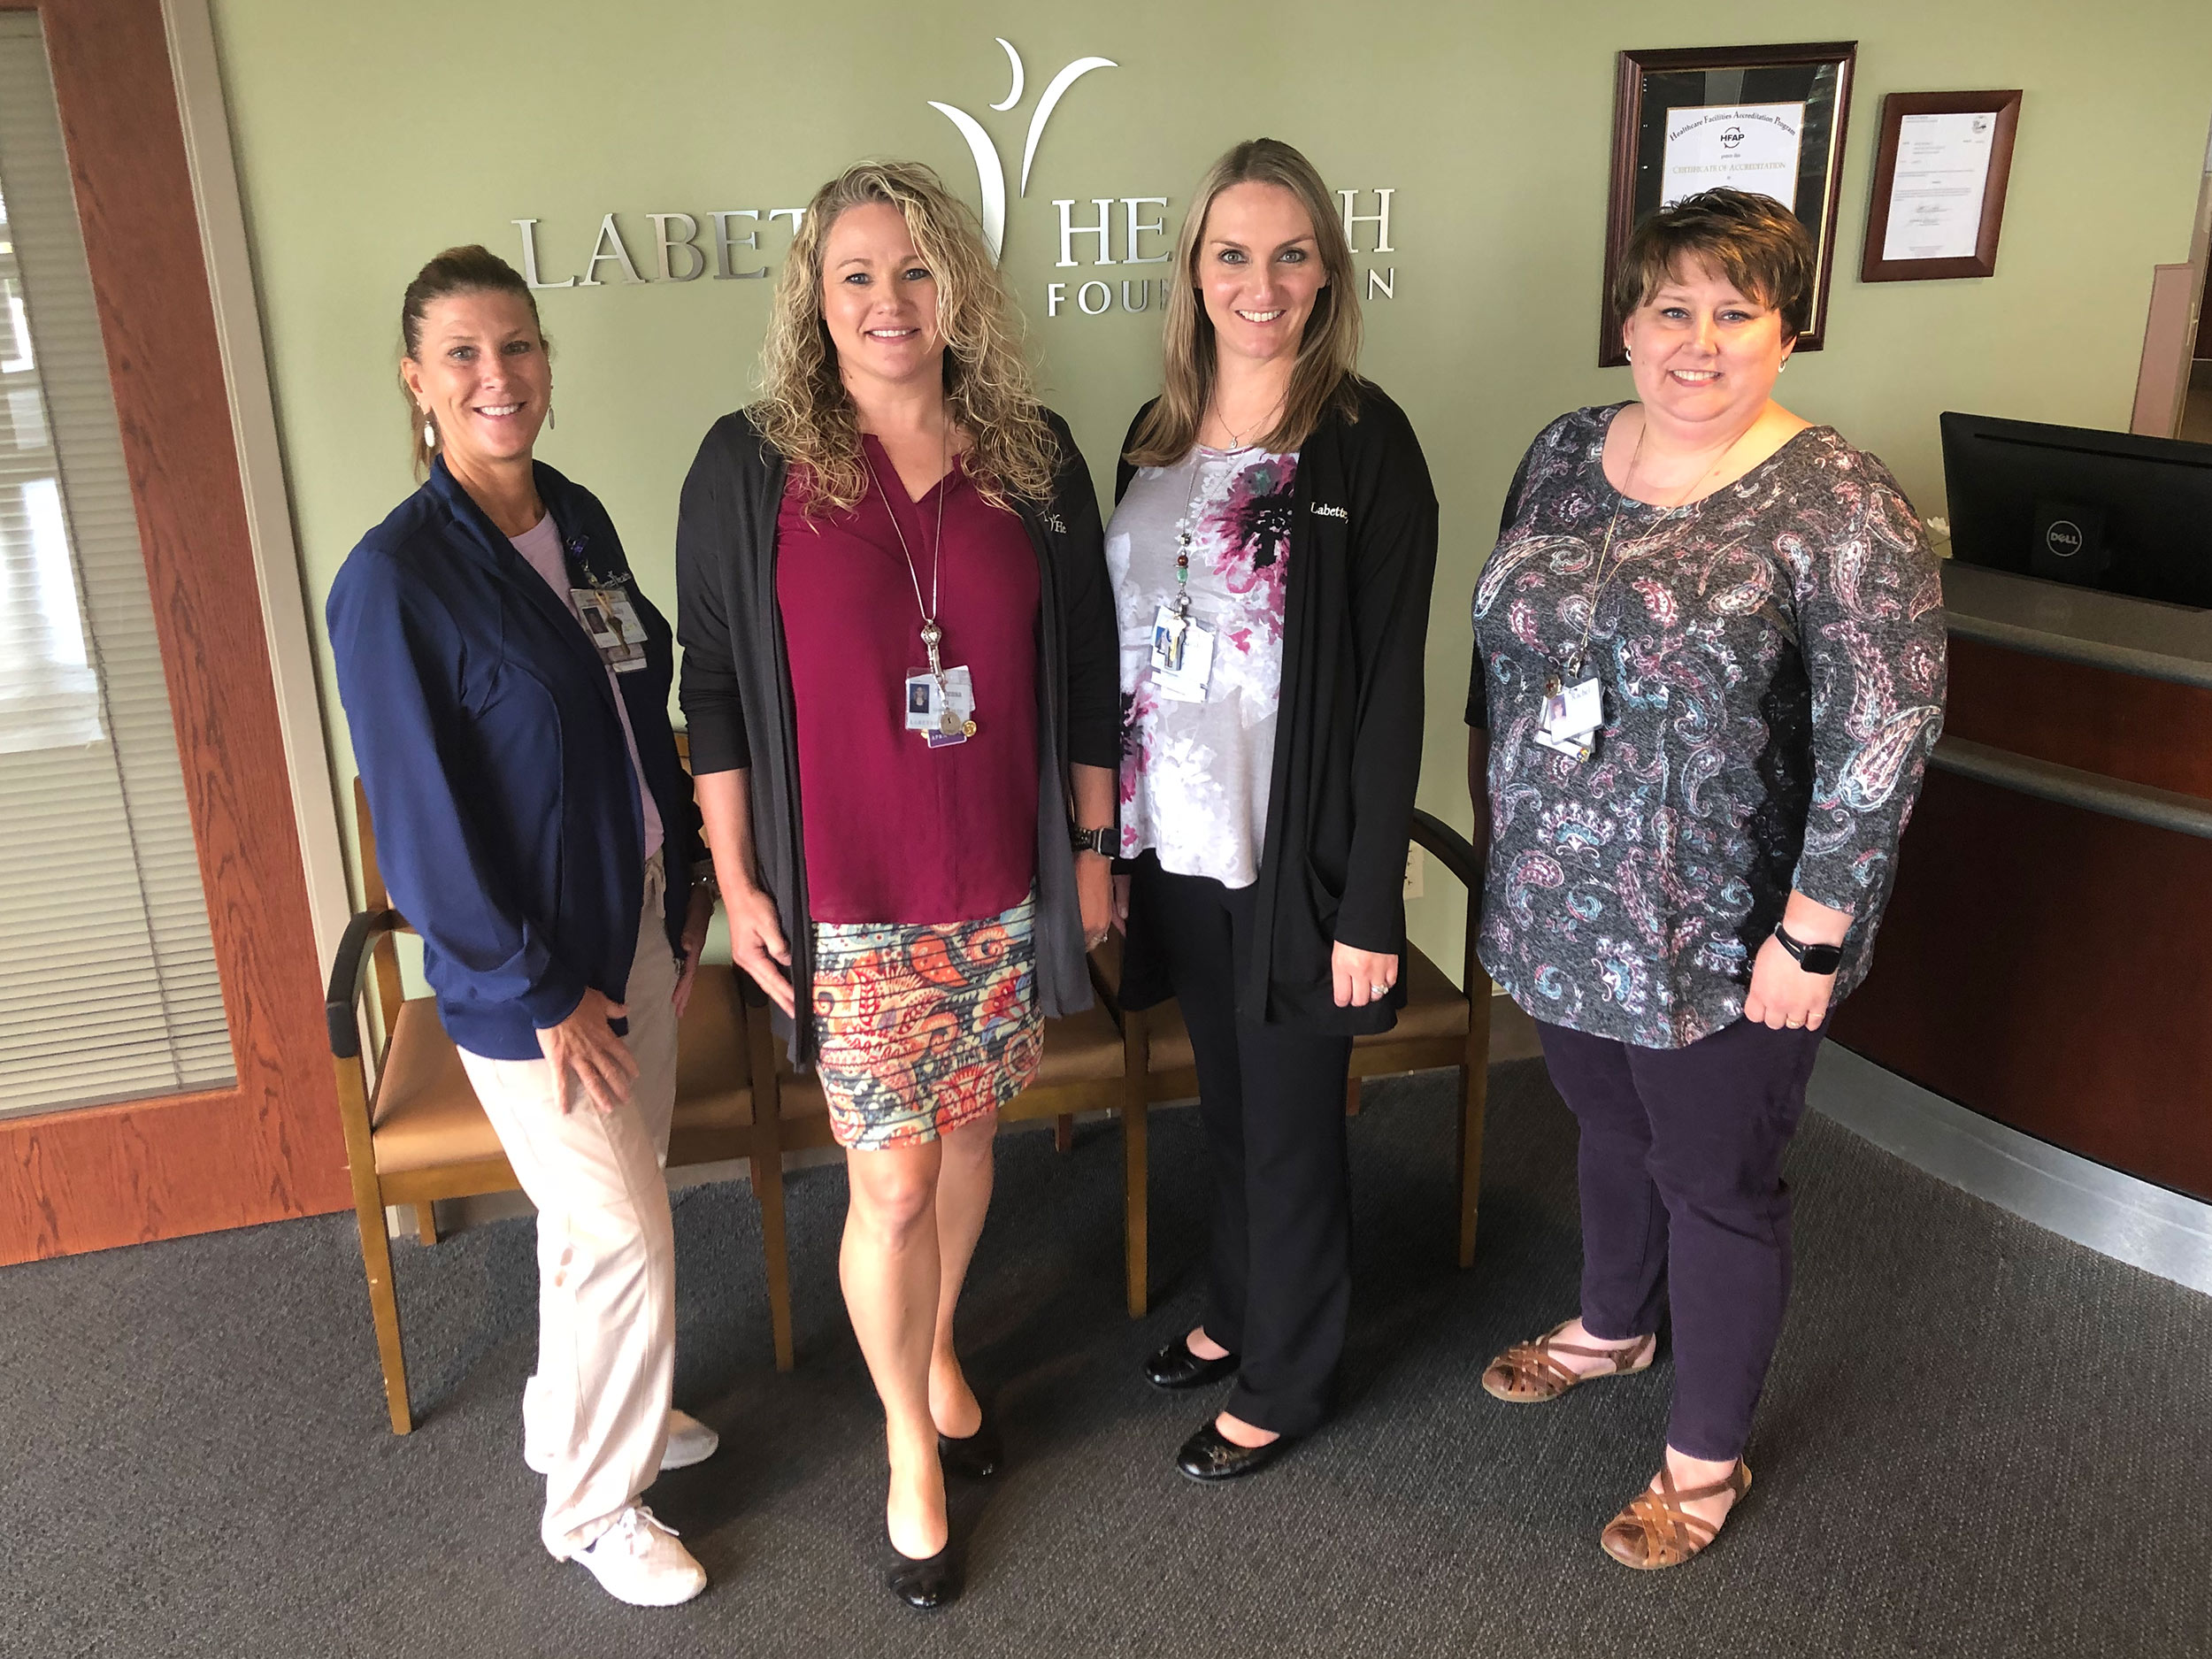 Labette Health team members include (from left) Emily O'Brien, RN; Tereasa DeMeritt, APRN;  Sarah Vaughan, RN; and Rachel Merrick, RN.